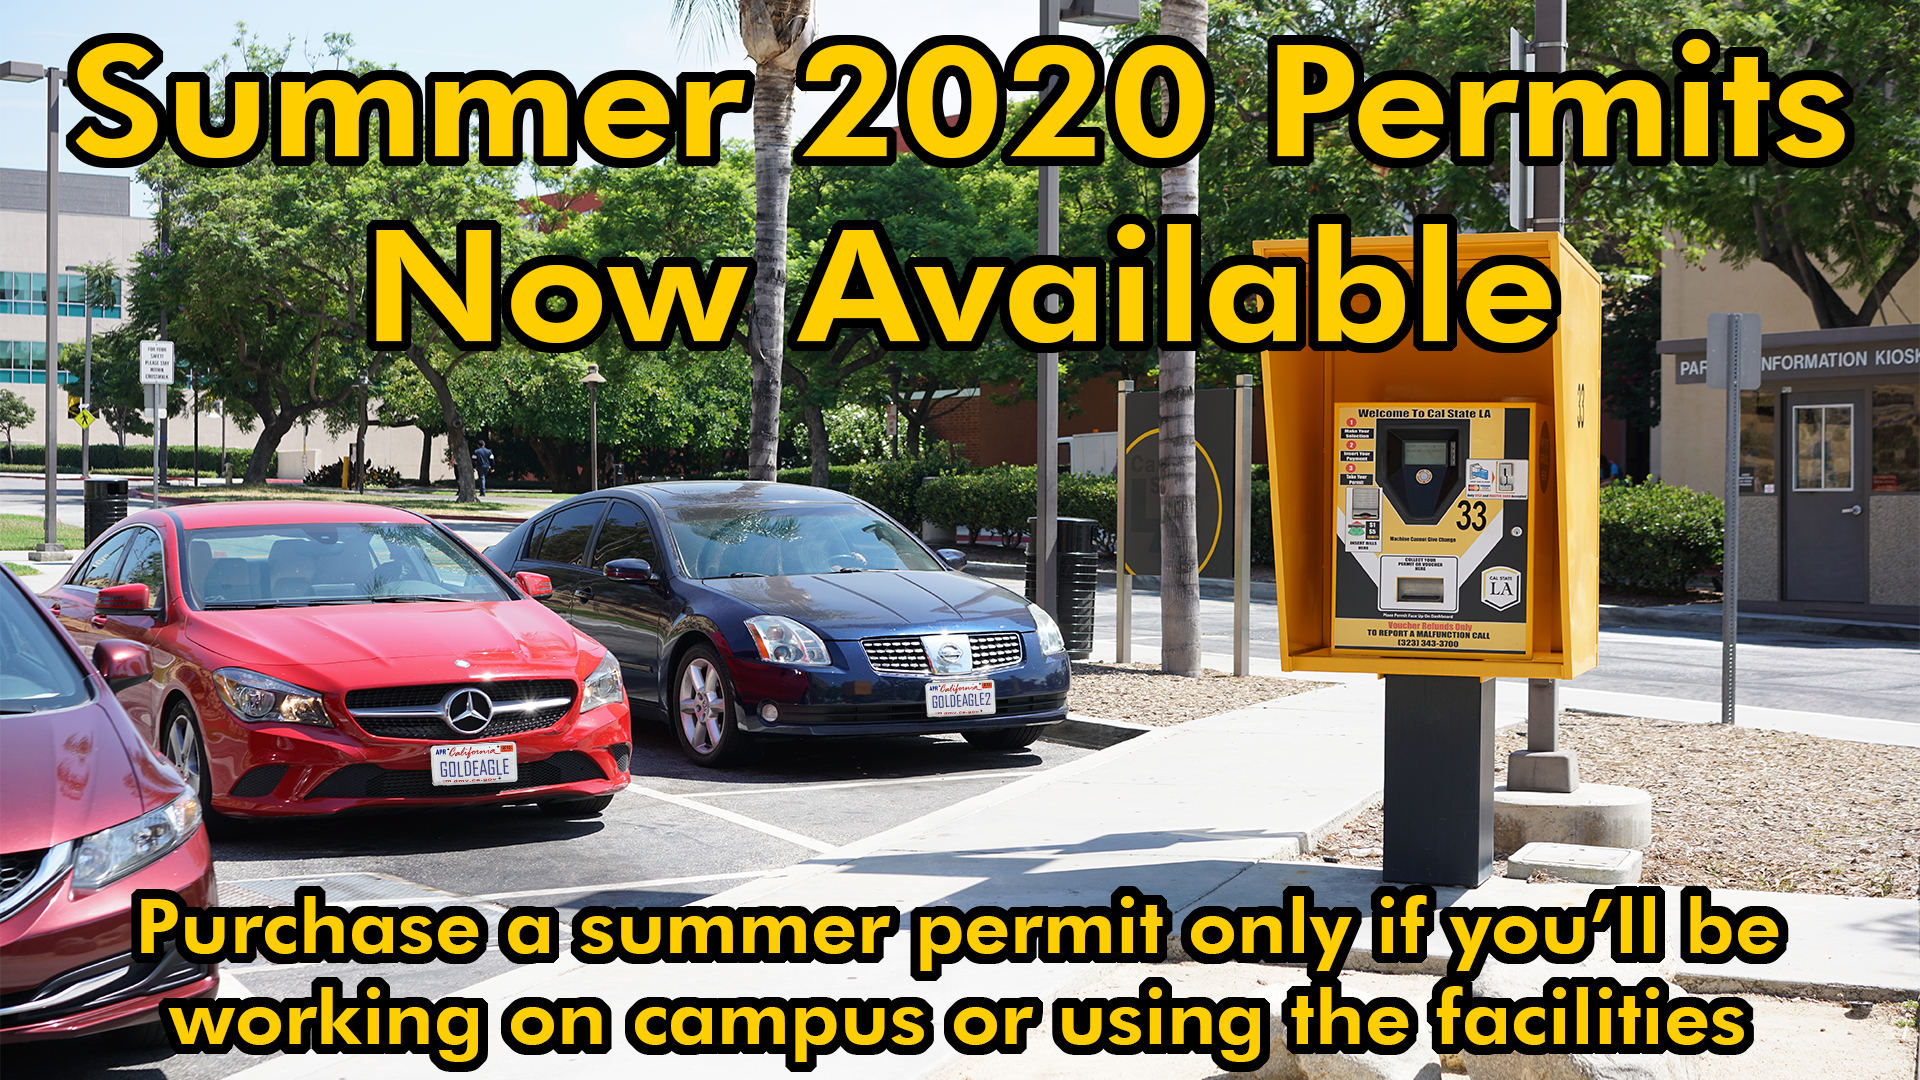 Summer 2020 Permits Available